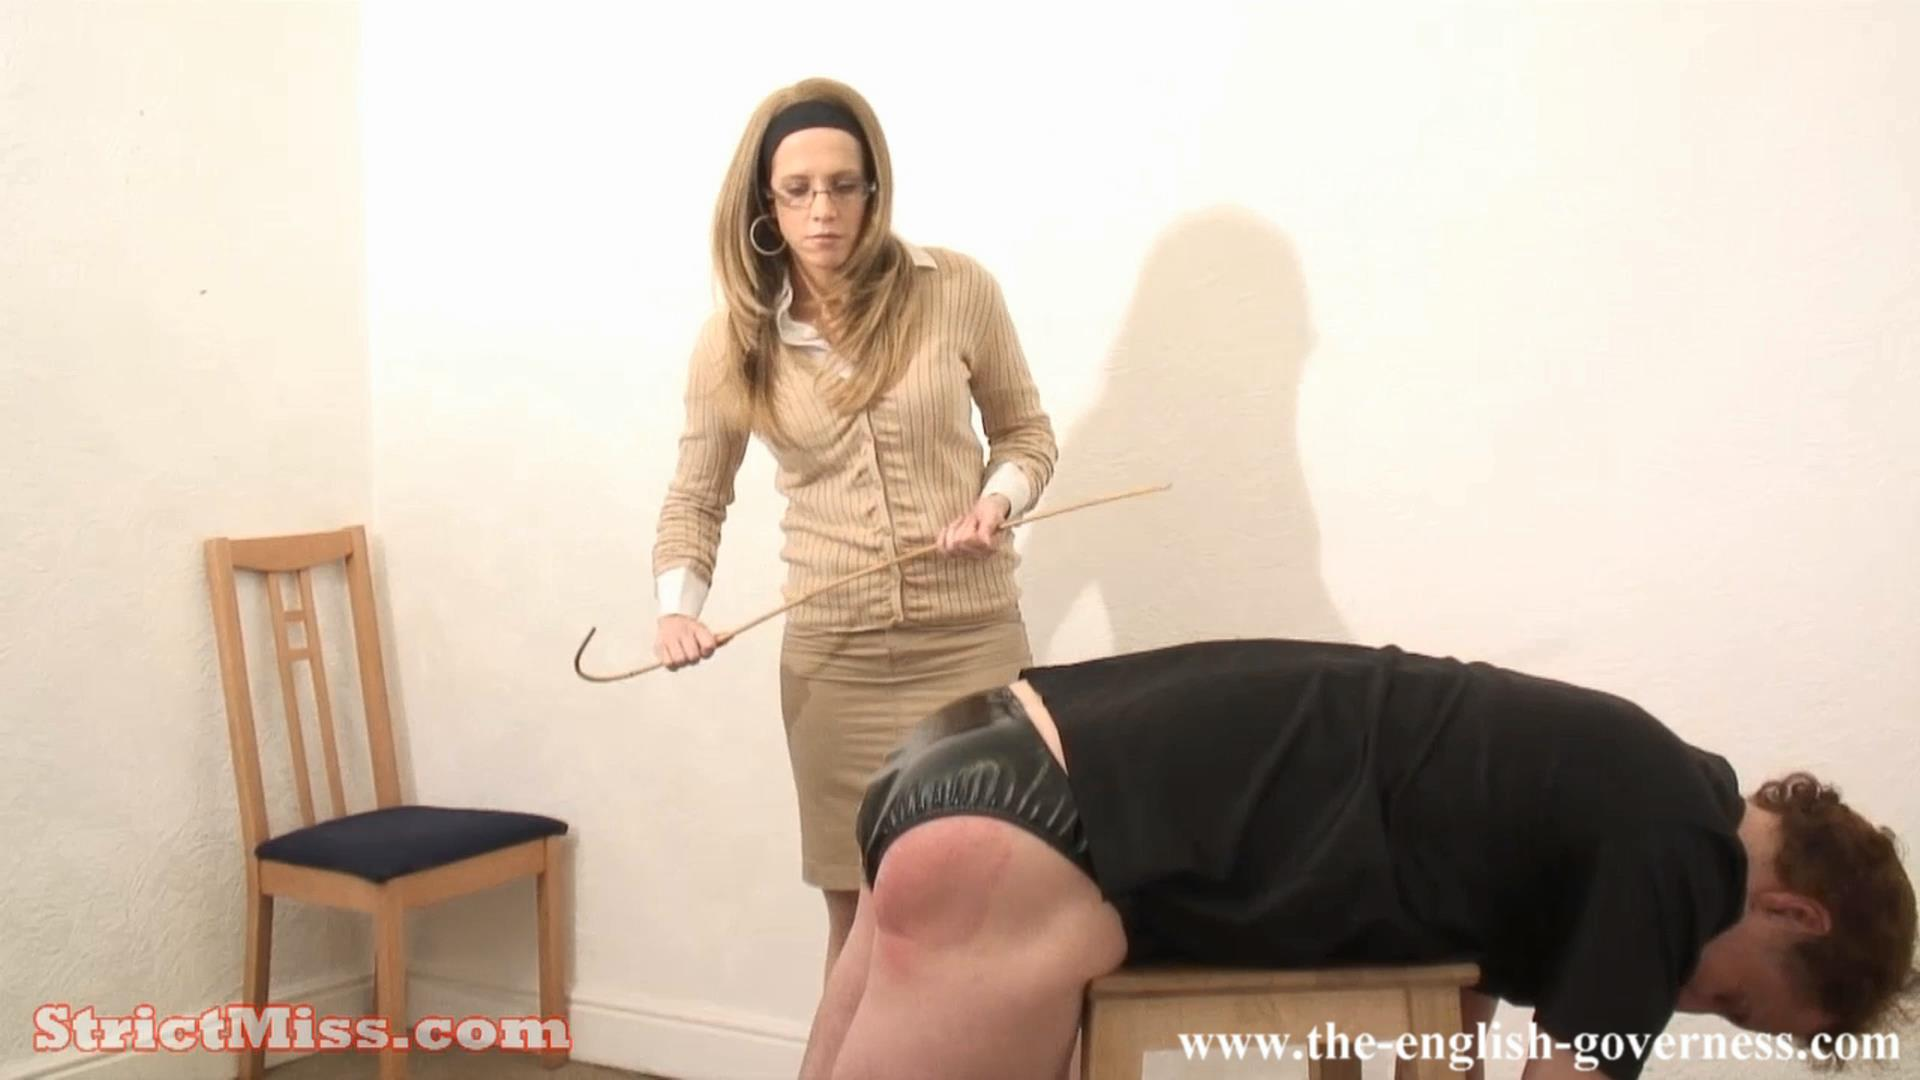 Miss Brown In Scene: Miss Brown has no sympthay when it comes to caning - THE-ENGLISH-GOVERNESS - FULL HD/1080p/MP4